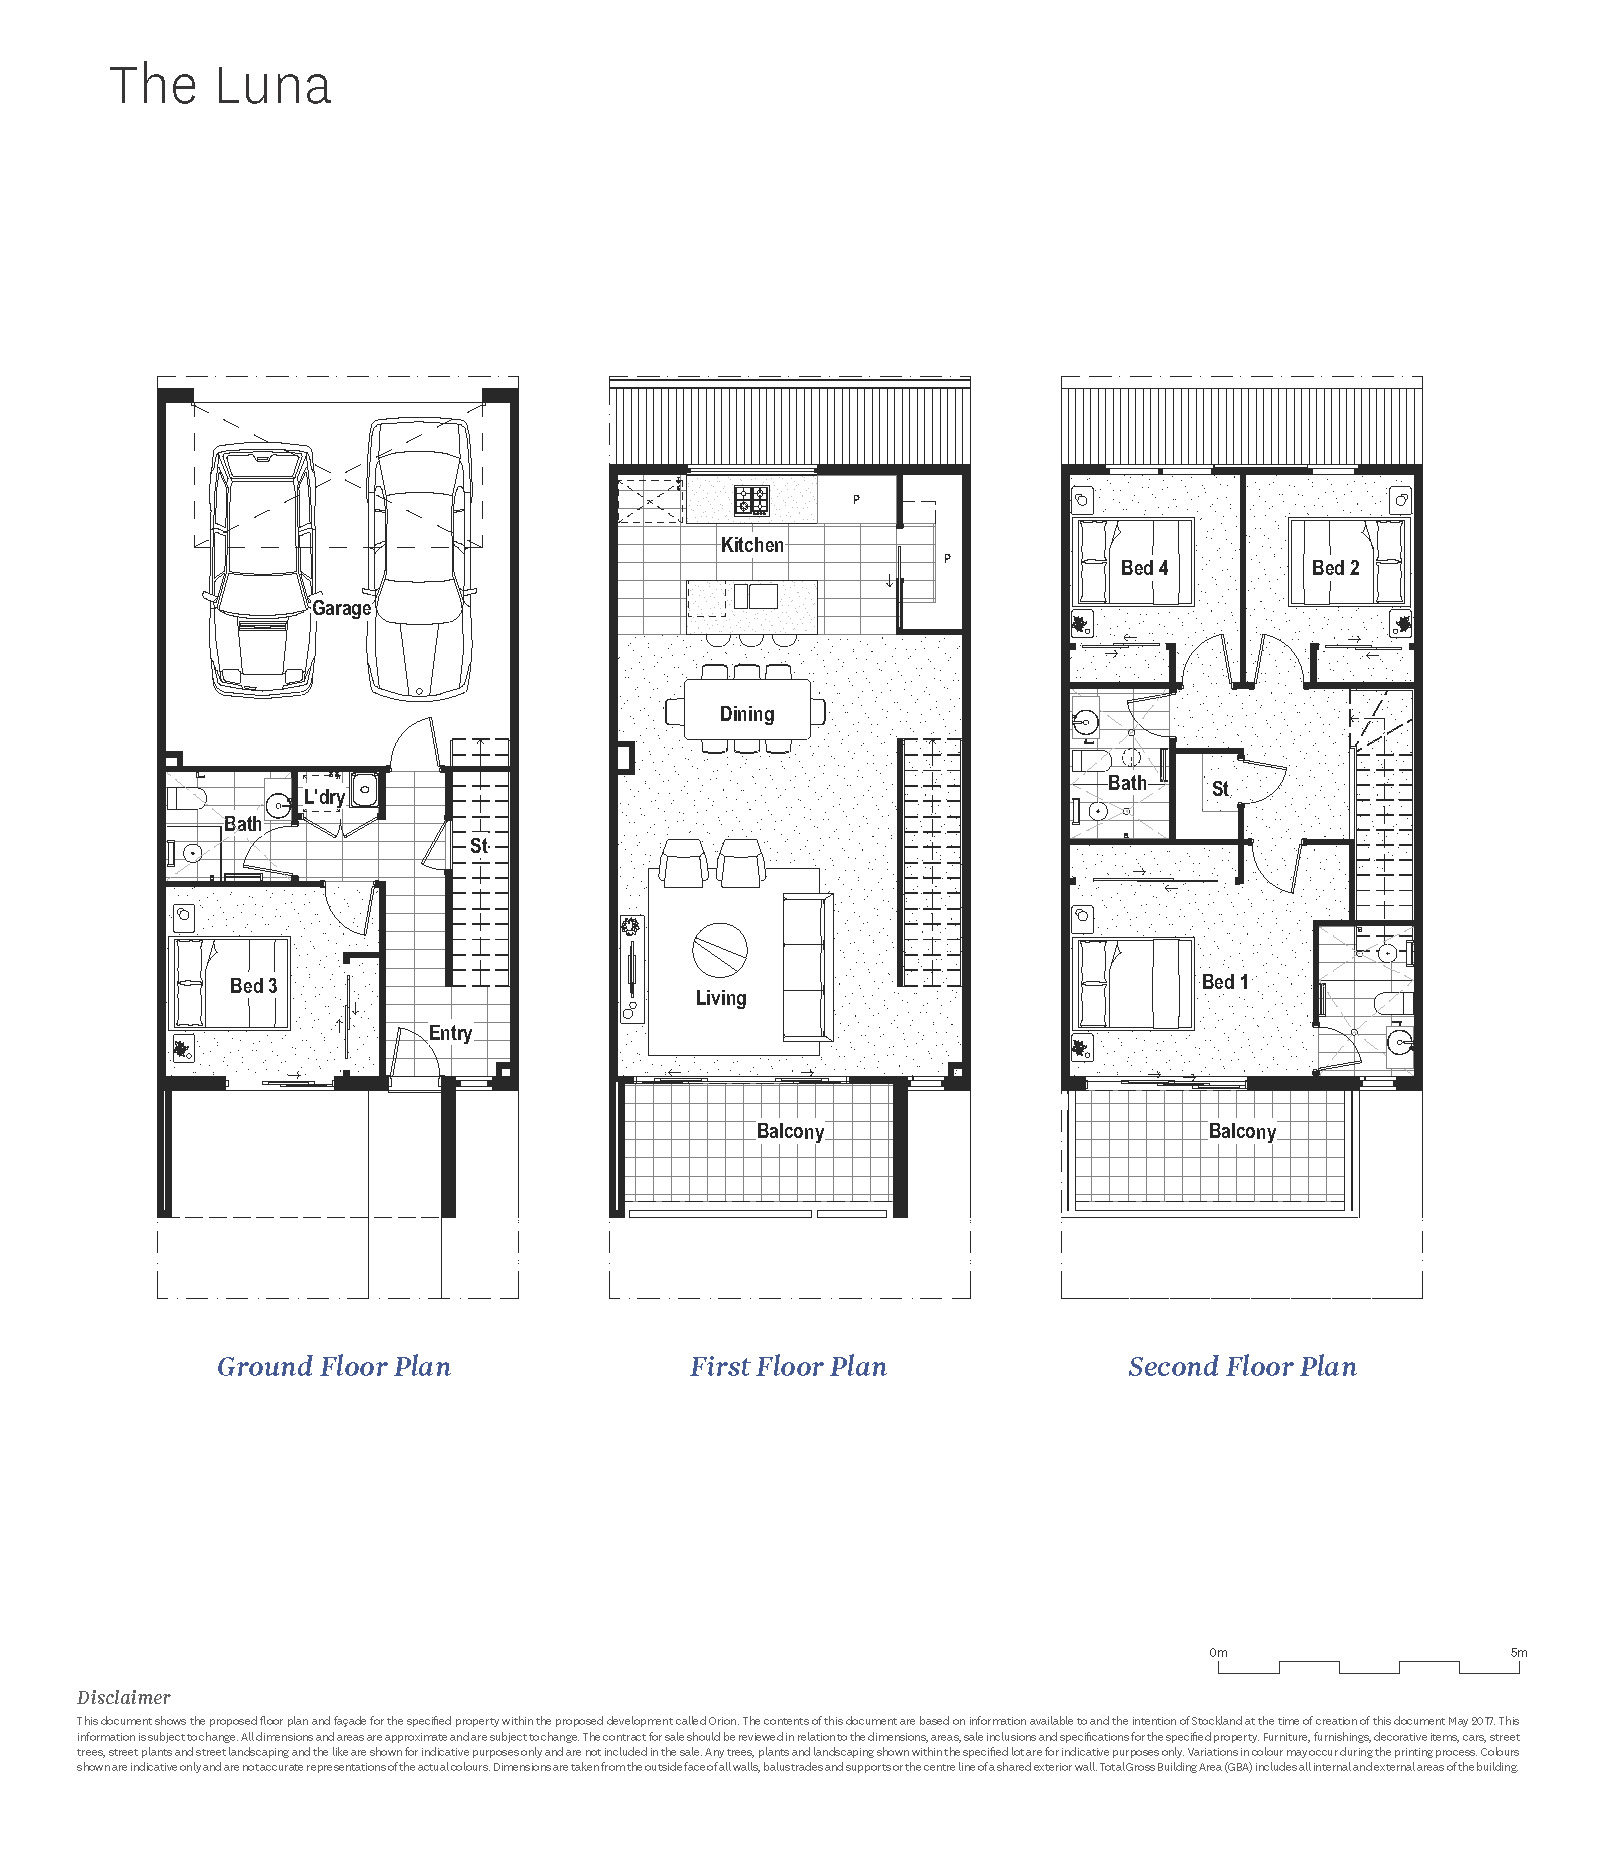 The Luna 4 bed townhome type at Orion Braybrook by Stockland